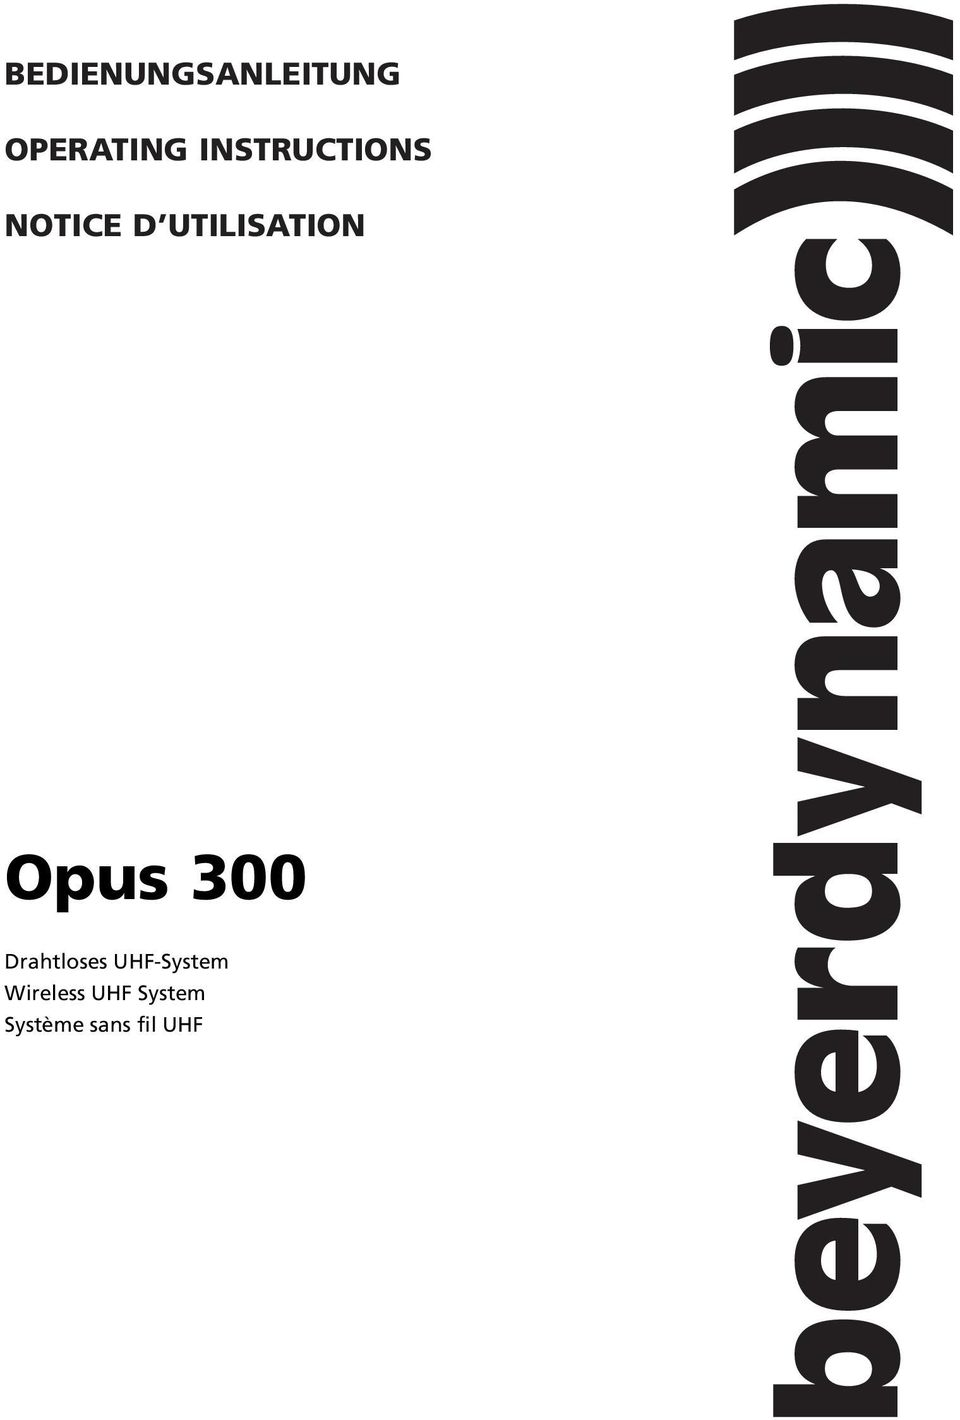 Opus 300 Drahtloses UHF-System